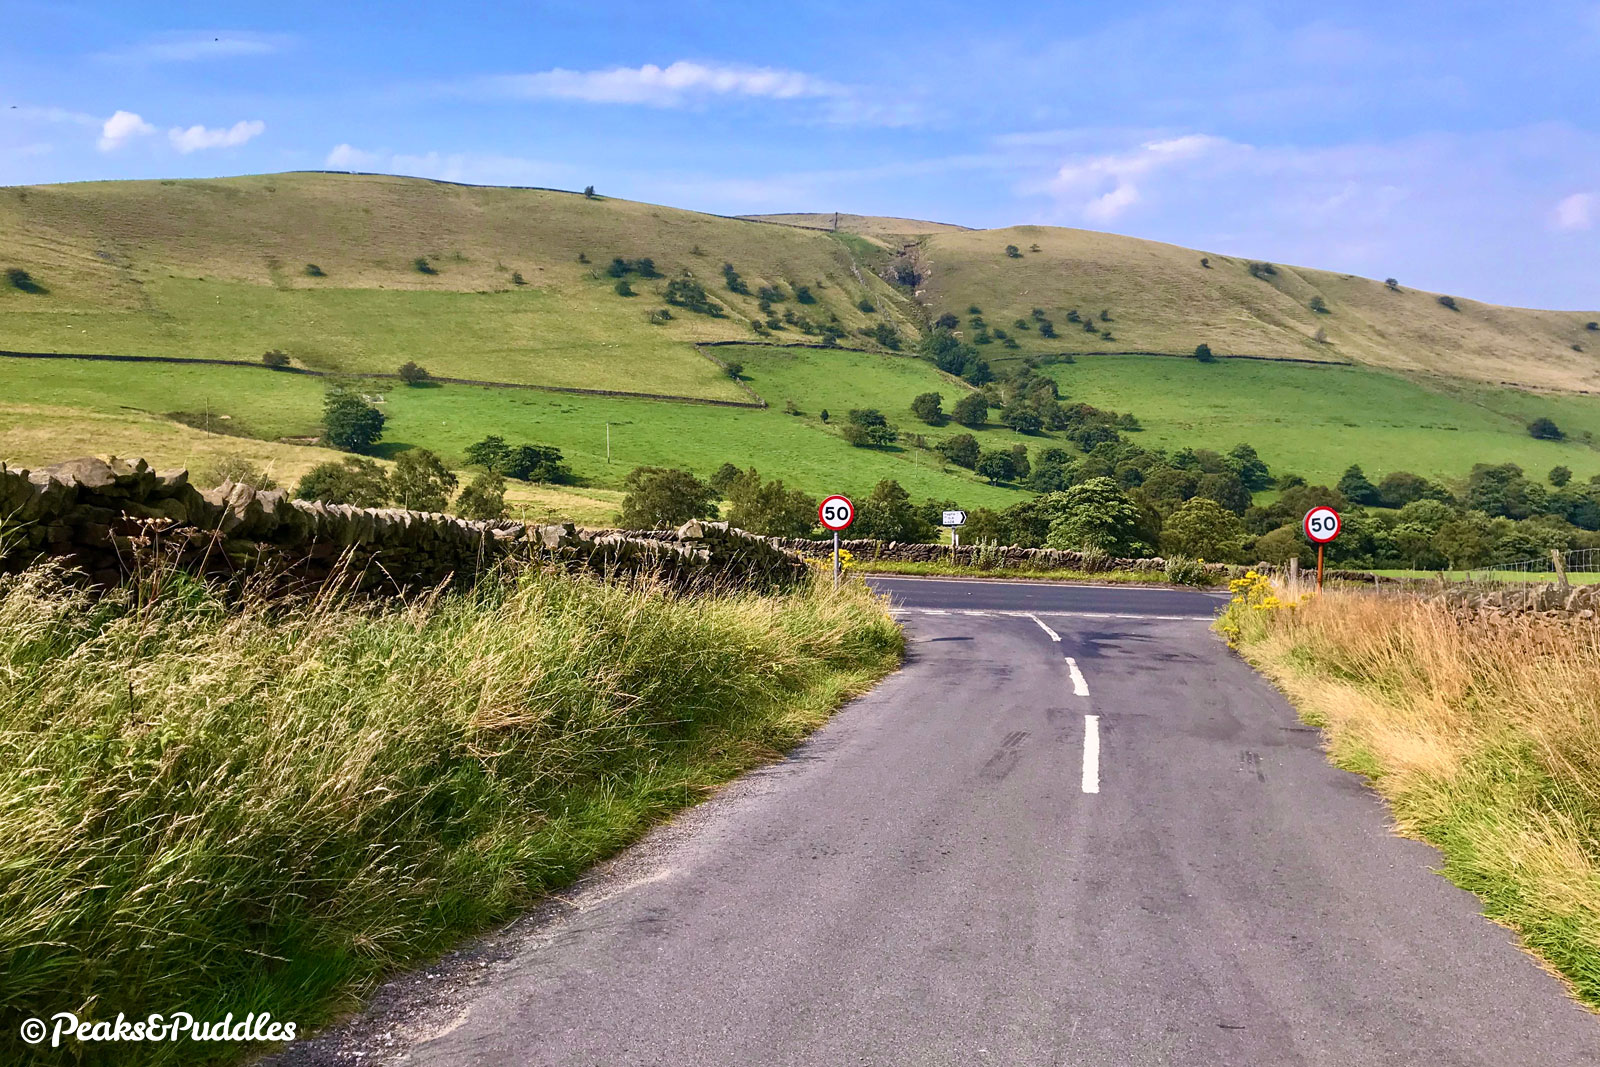 (A624 option) Approaching the A624 from Highgate Road, Chinley Churn now looms large.